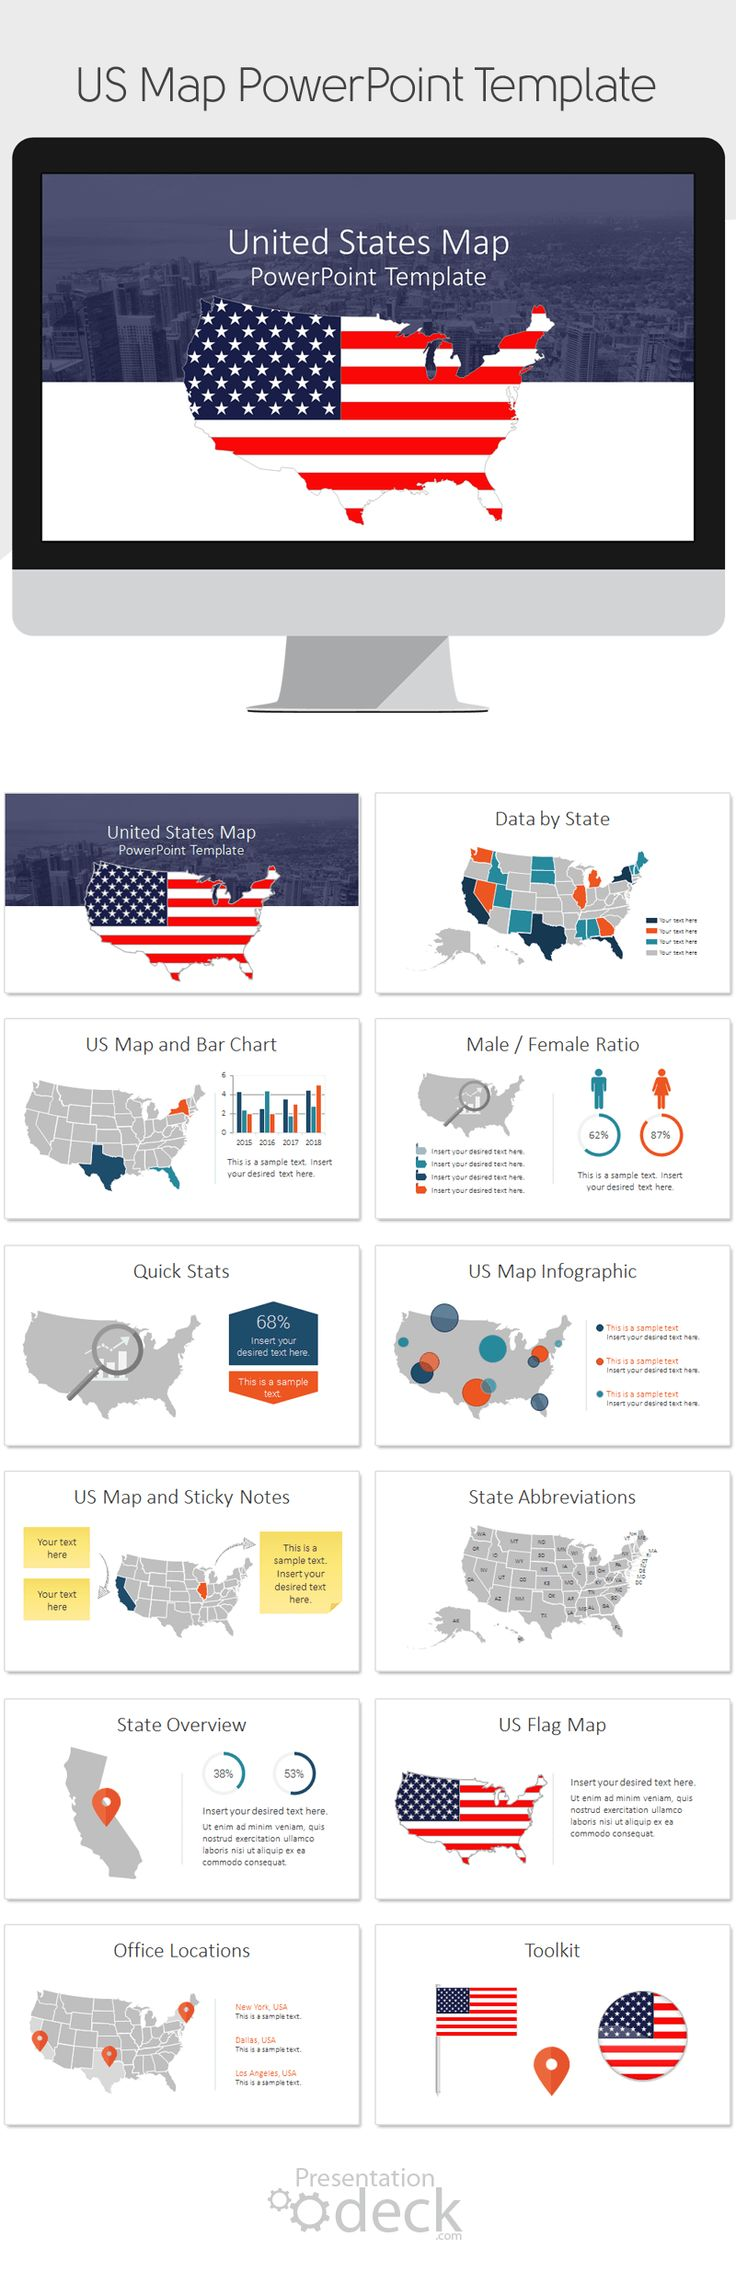 Best General PowerPoint Templates Images On Pinterest - Powerpoint slide with us map